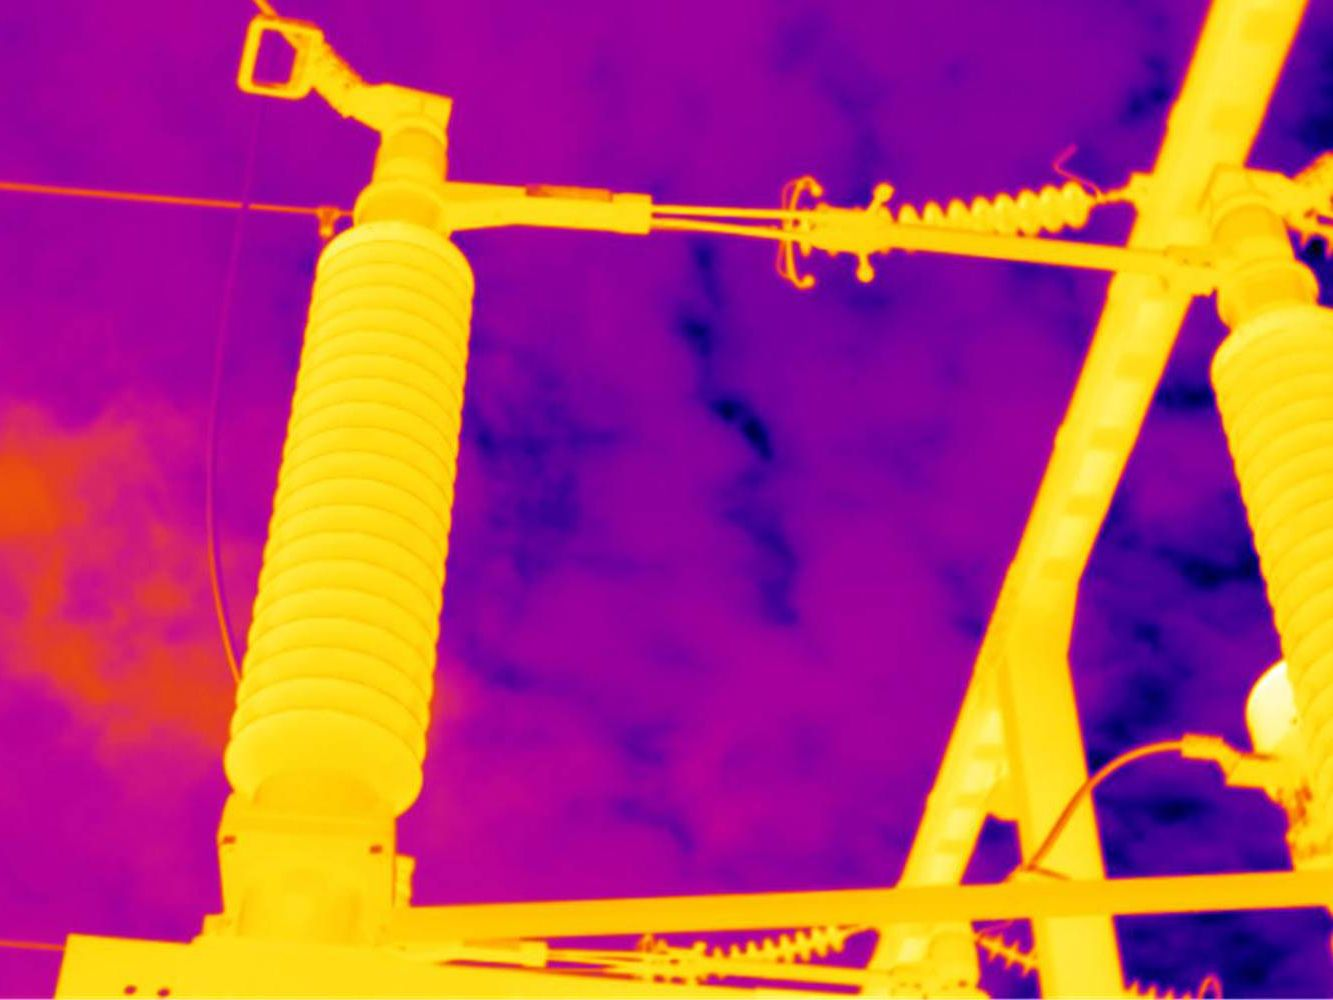 thermal-image-energy-distribution.jpg